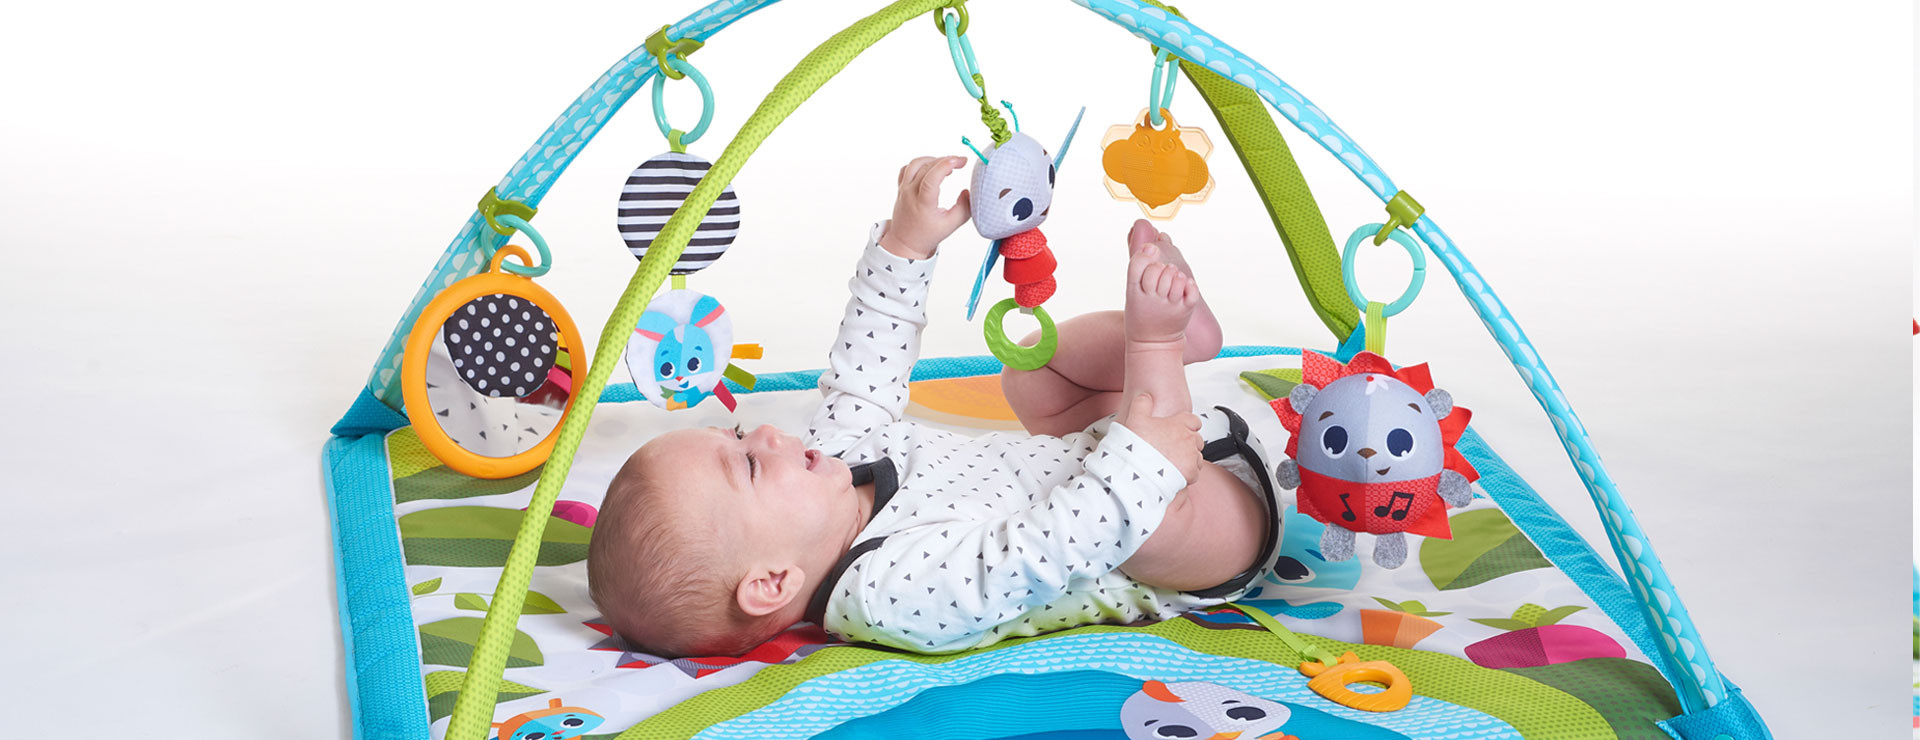 Overhead gym mode helps focus baby's attention while on their back